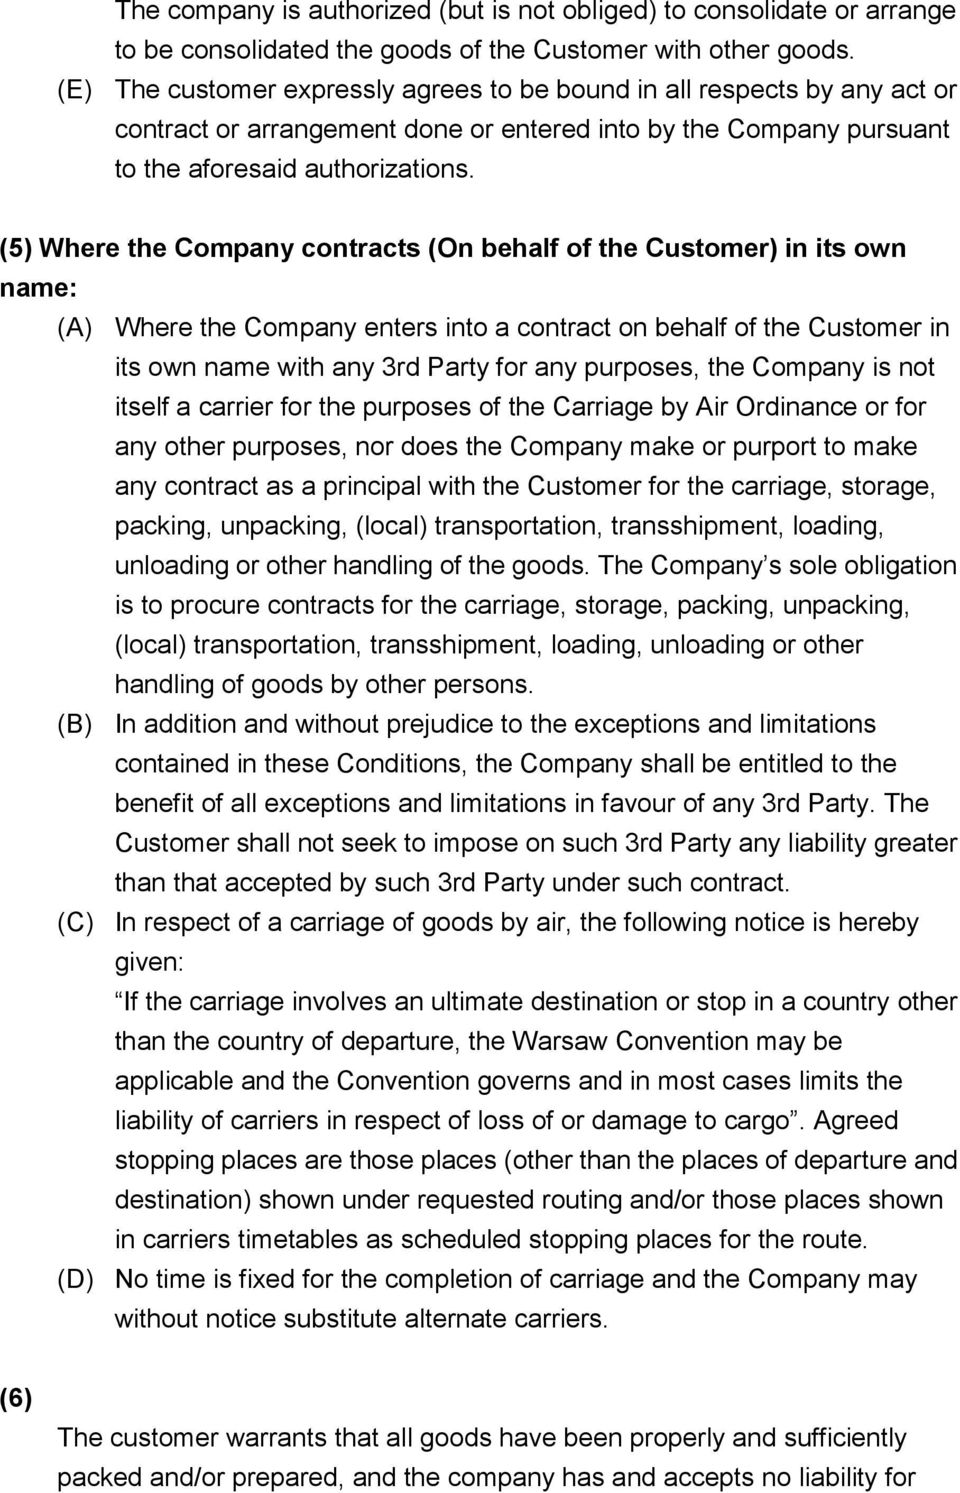 (5) Where the Company contracts (On behalf of the Customer) in its own name: (A) Where the Company enters into a contract on behalf of the Customer in its own name with any 3rd Party for any